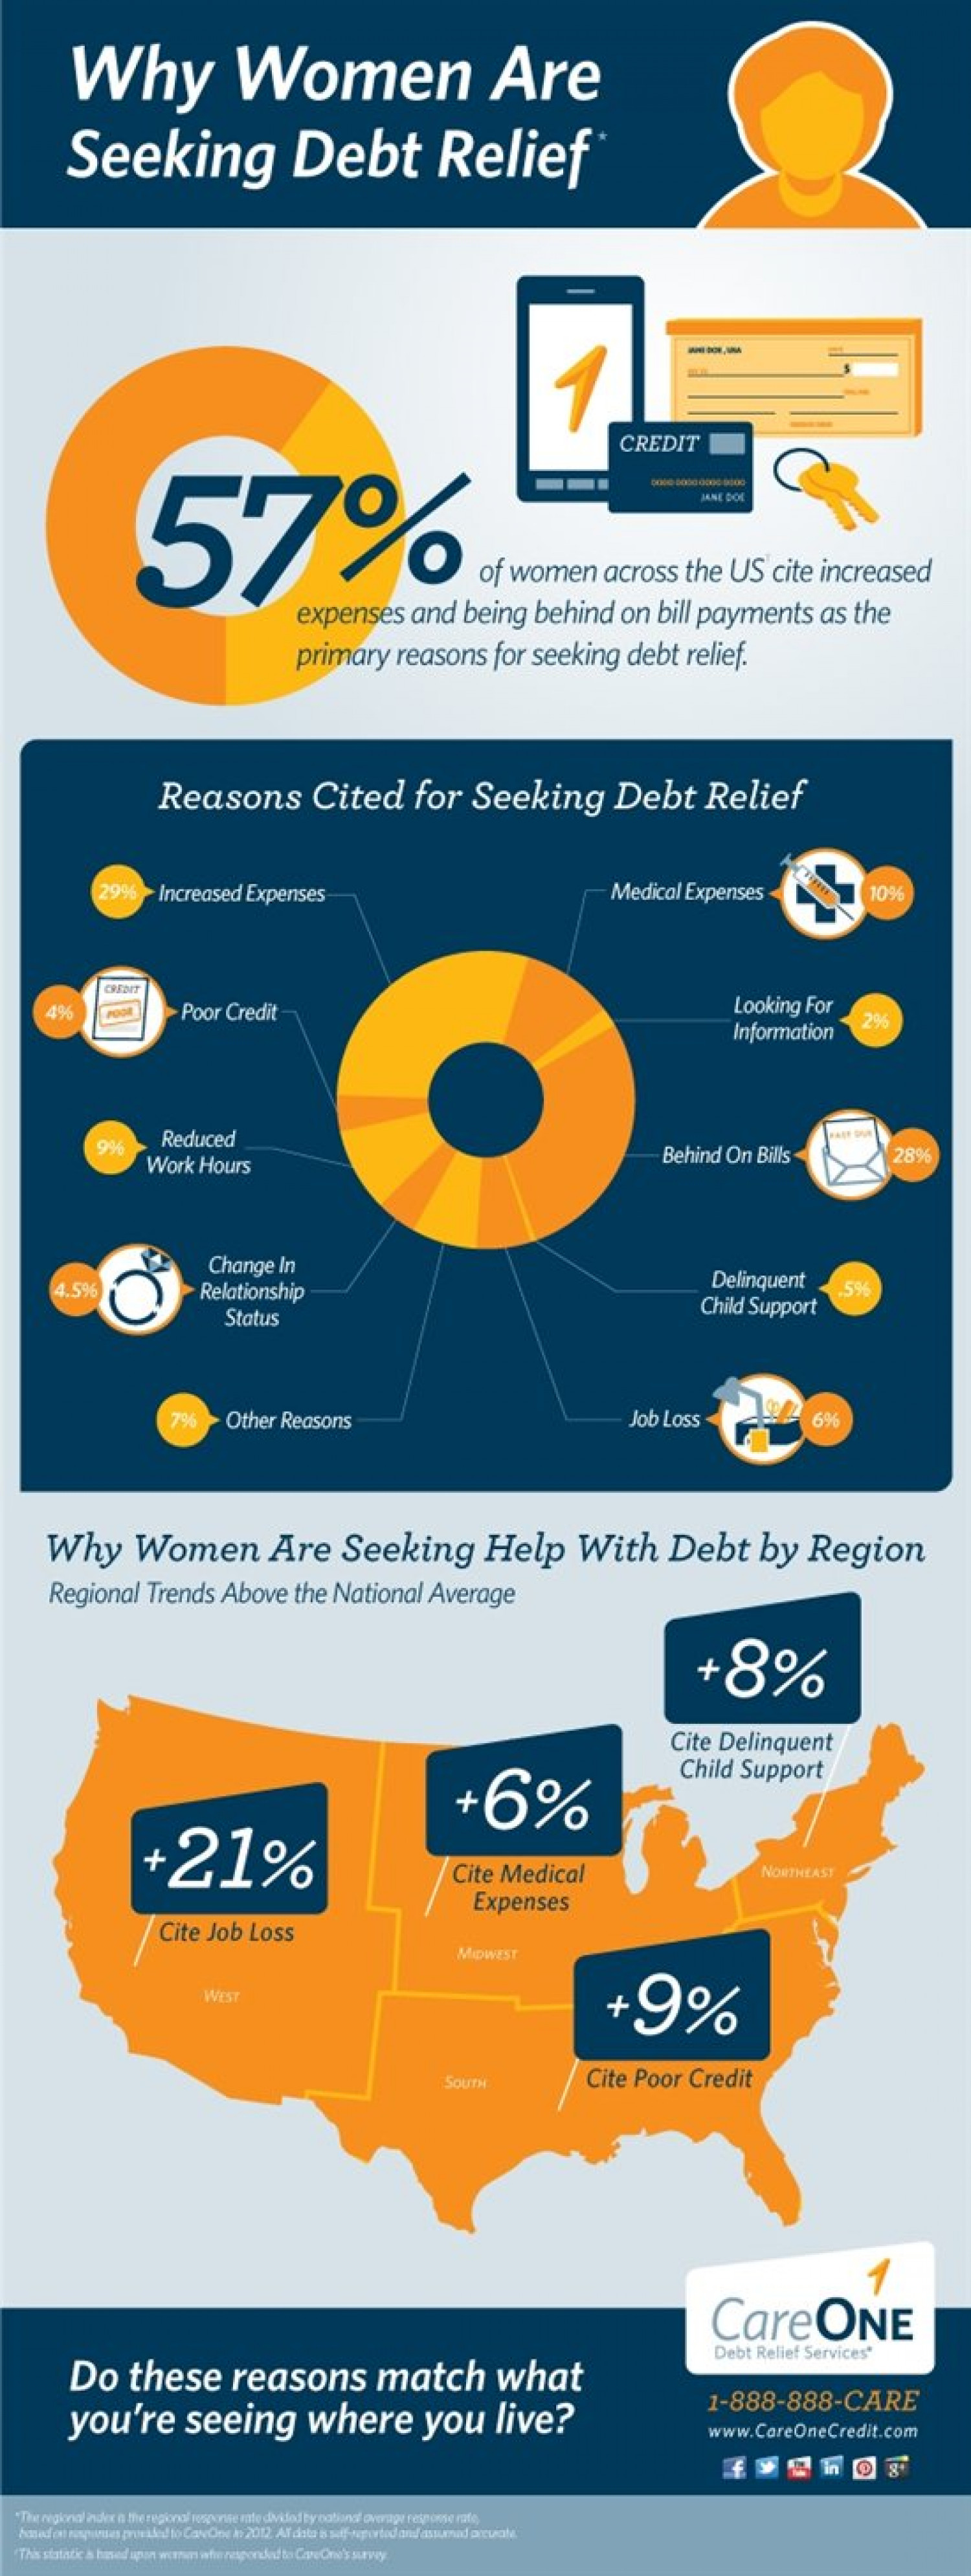 Why Women are Seeking Debt Relief Infographic